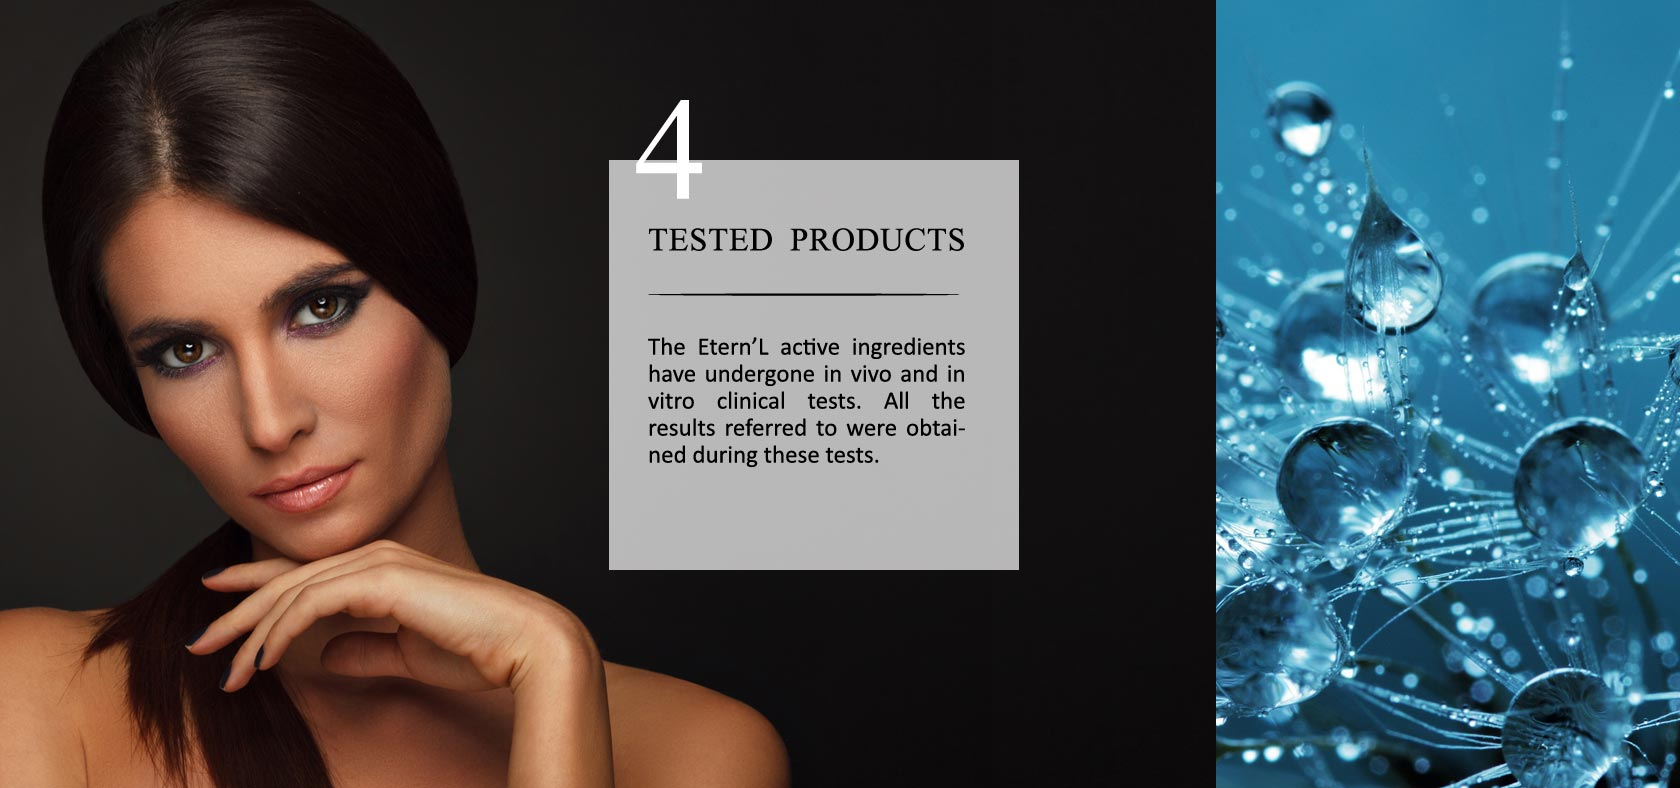 Éternel commitment #4: tested products